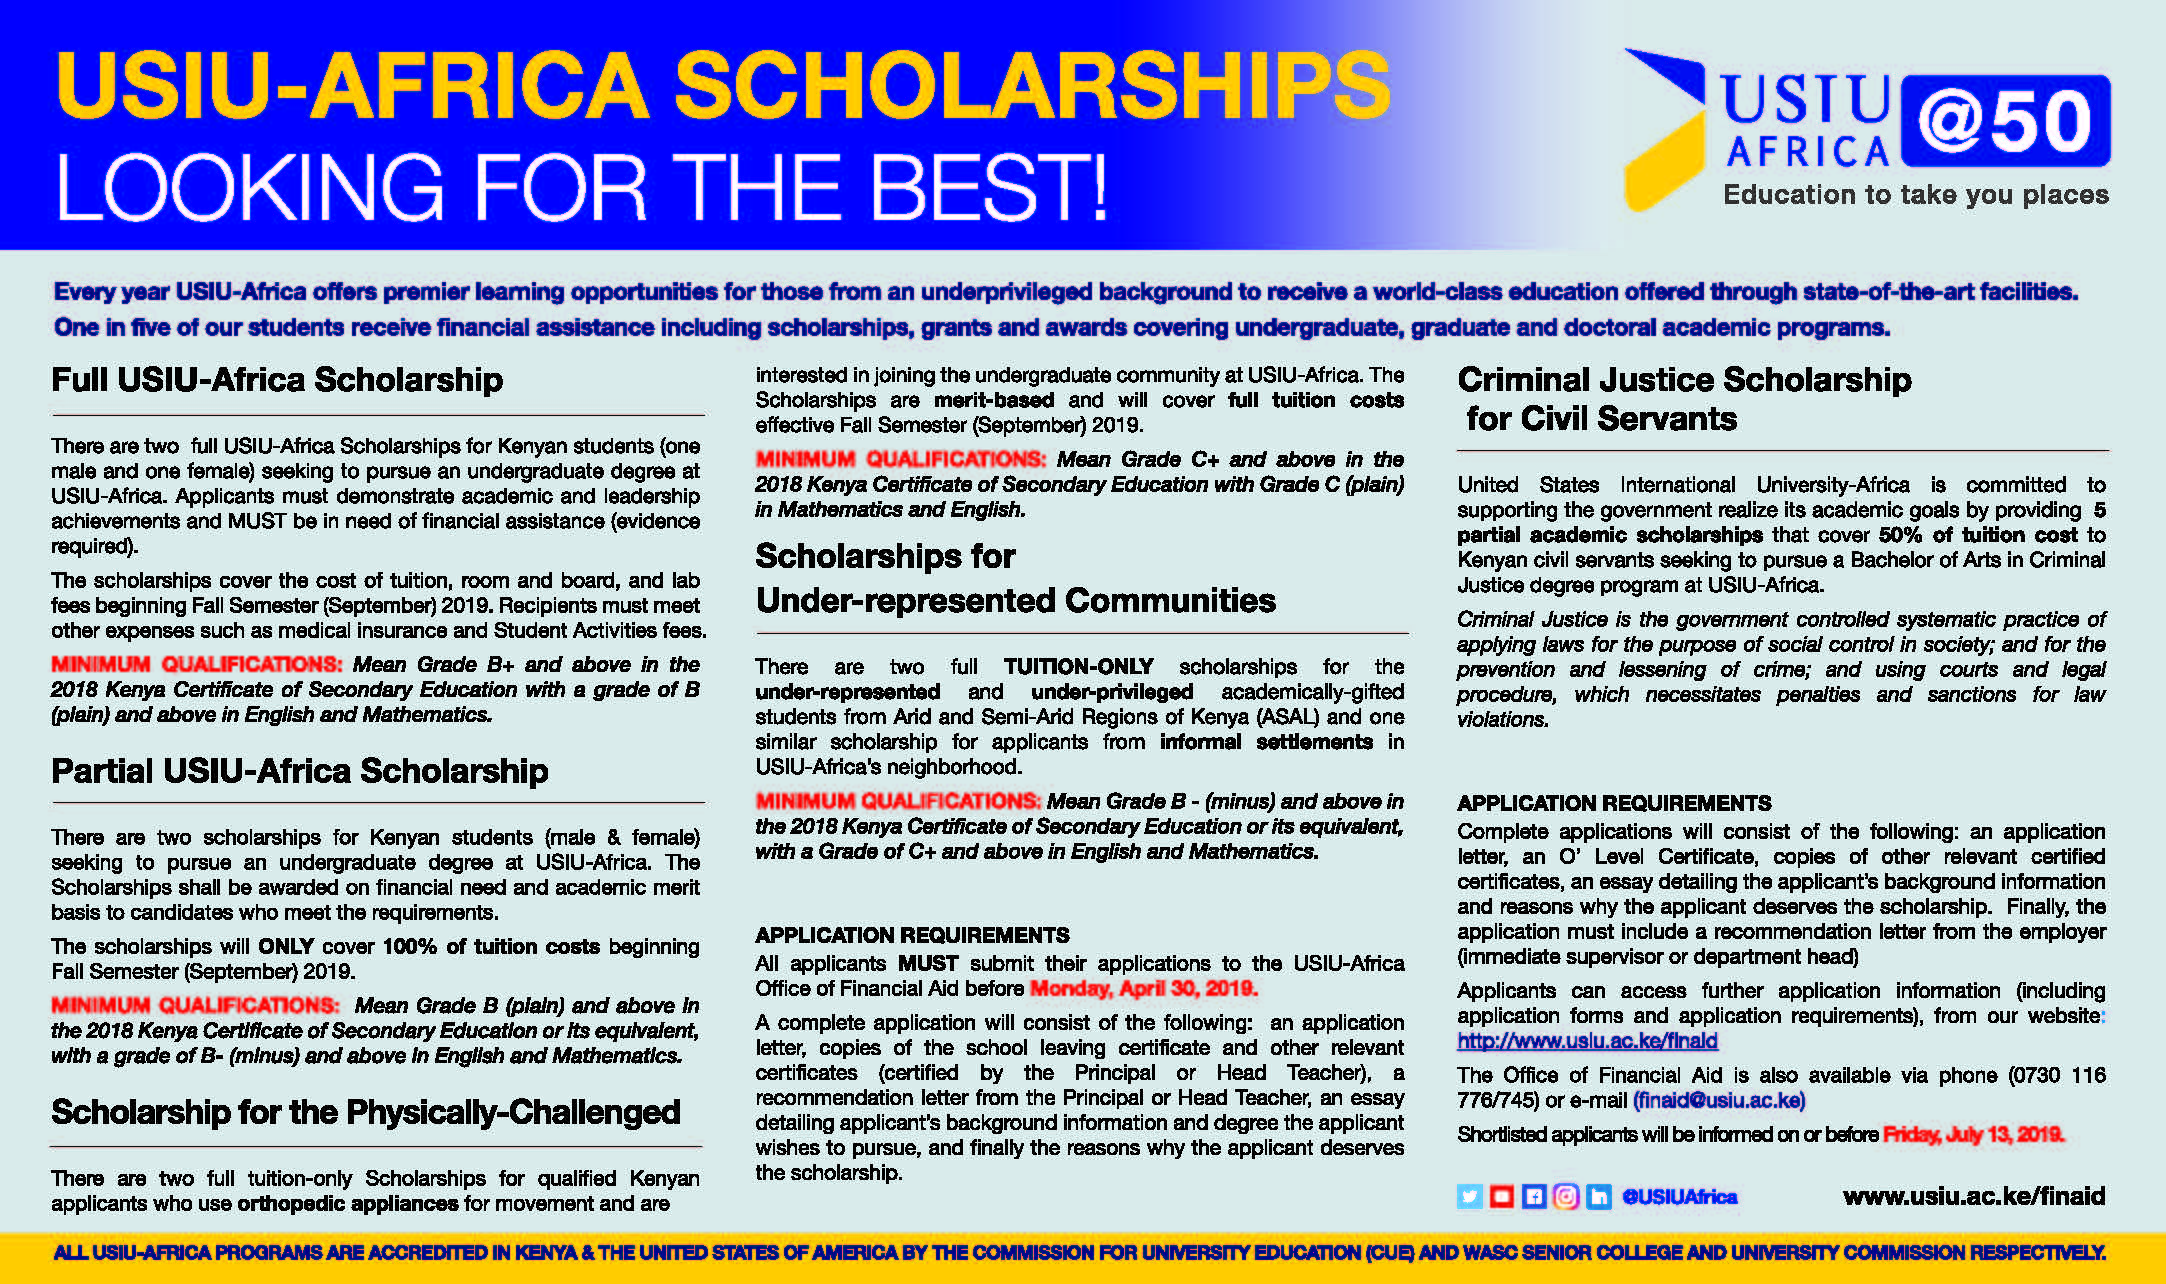 USIU-AFRICA SCHOLARSHIPS; DEADLINE - Monday, April 30, 2019